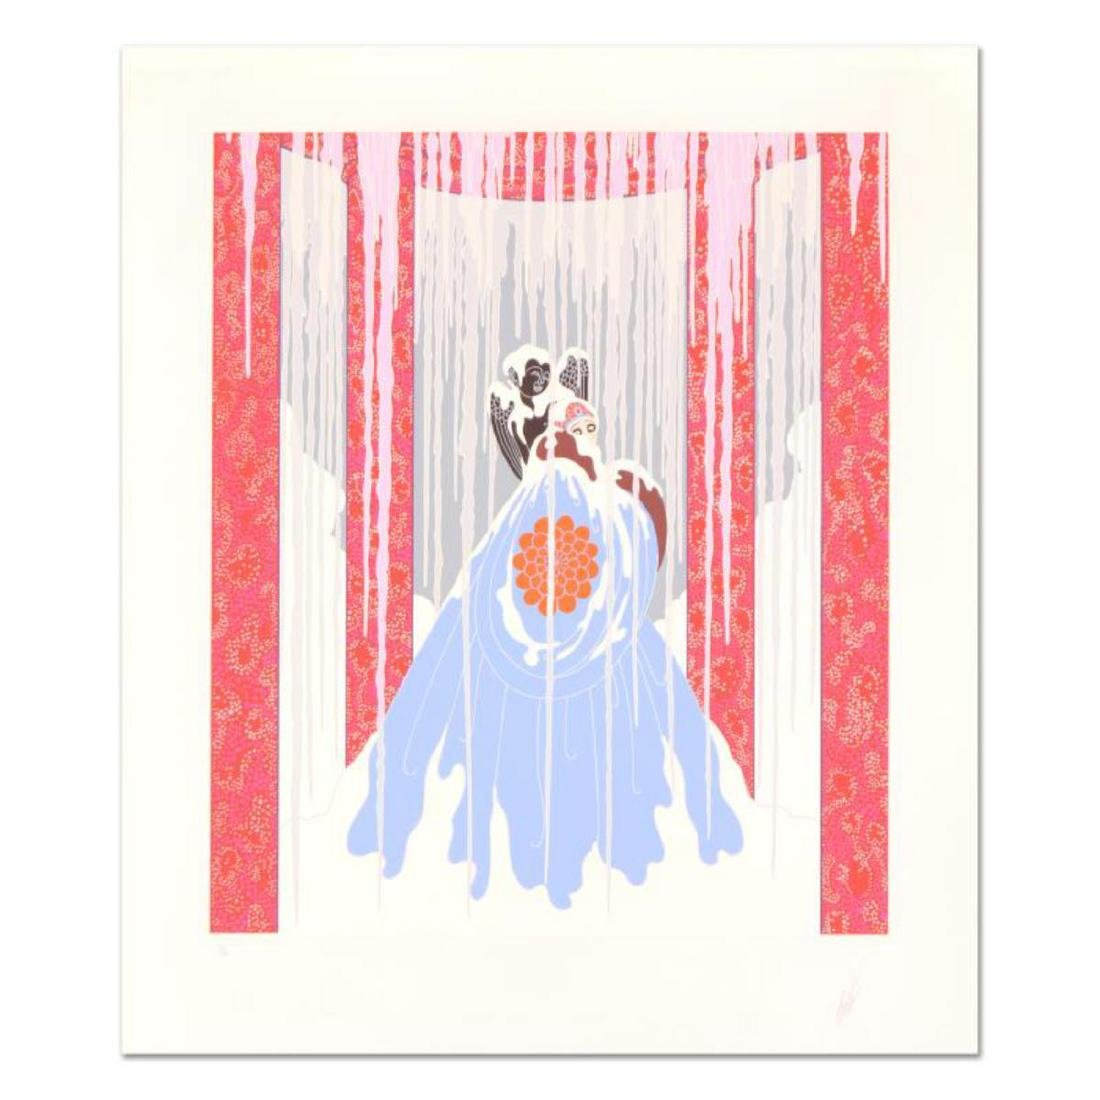 "Erte (1892-1990), ""Loves Captive"" Limited Edition"